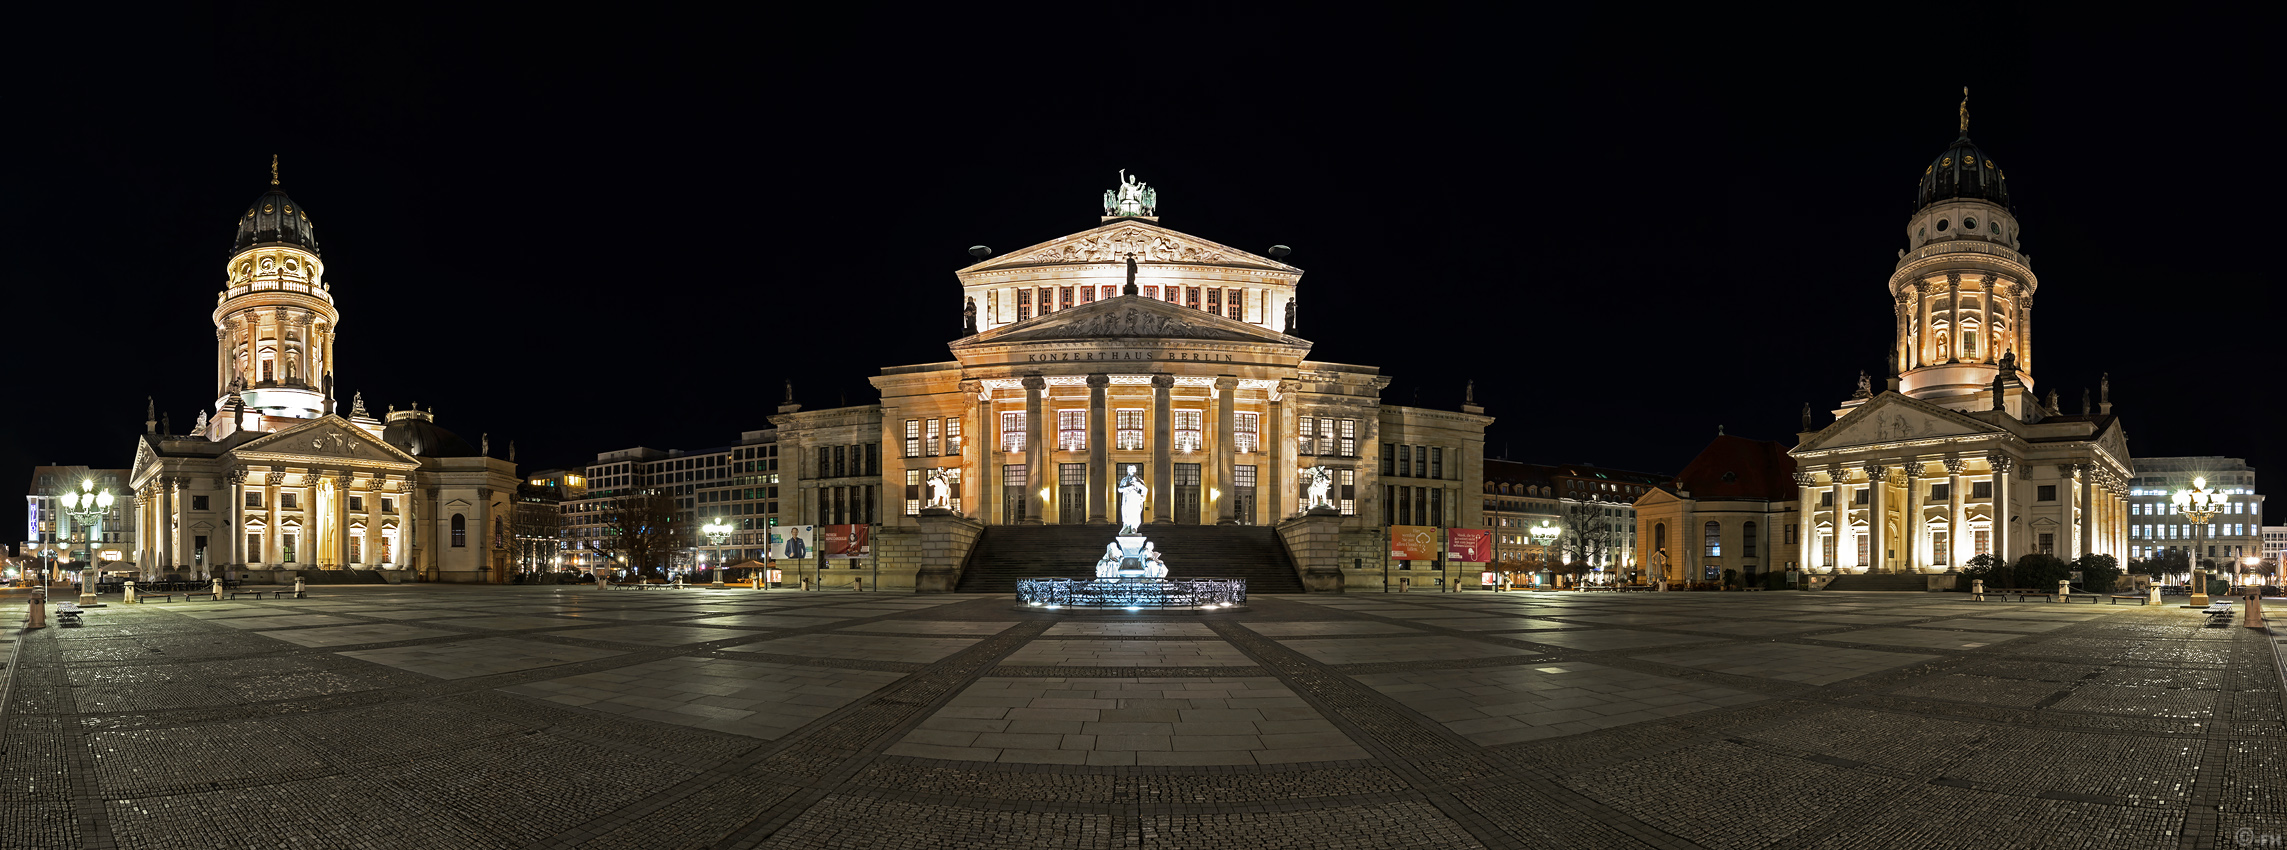 Gendarmenmarkt_night_Pano_k